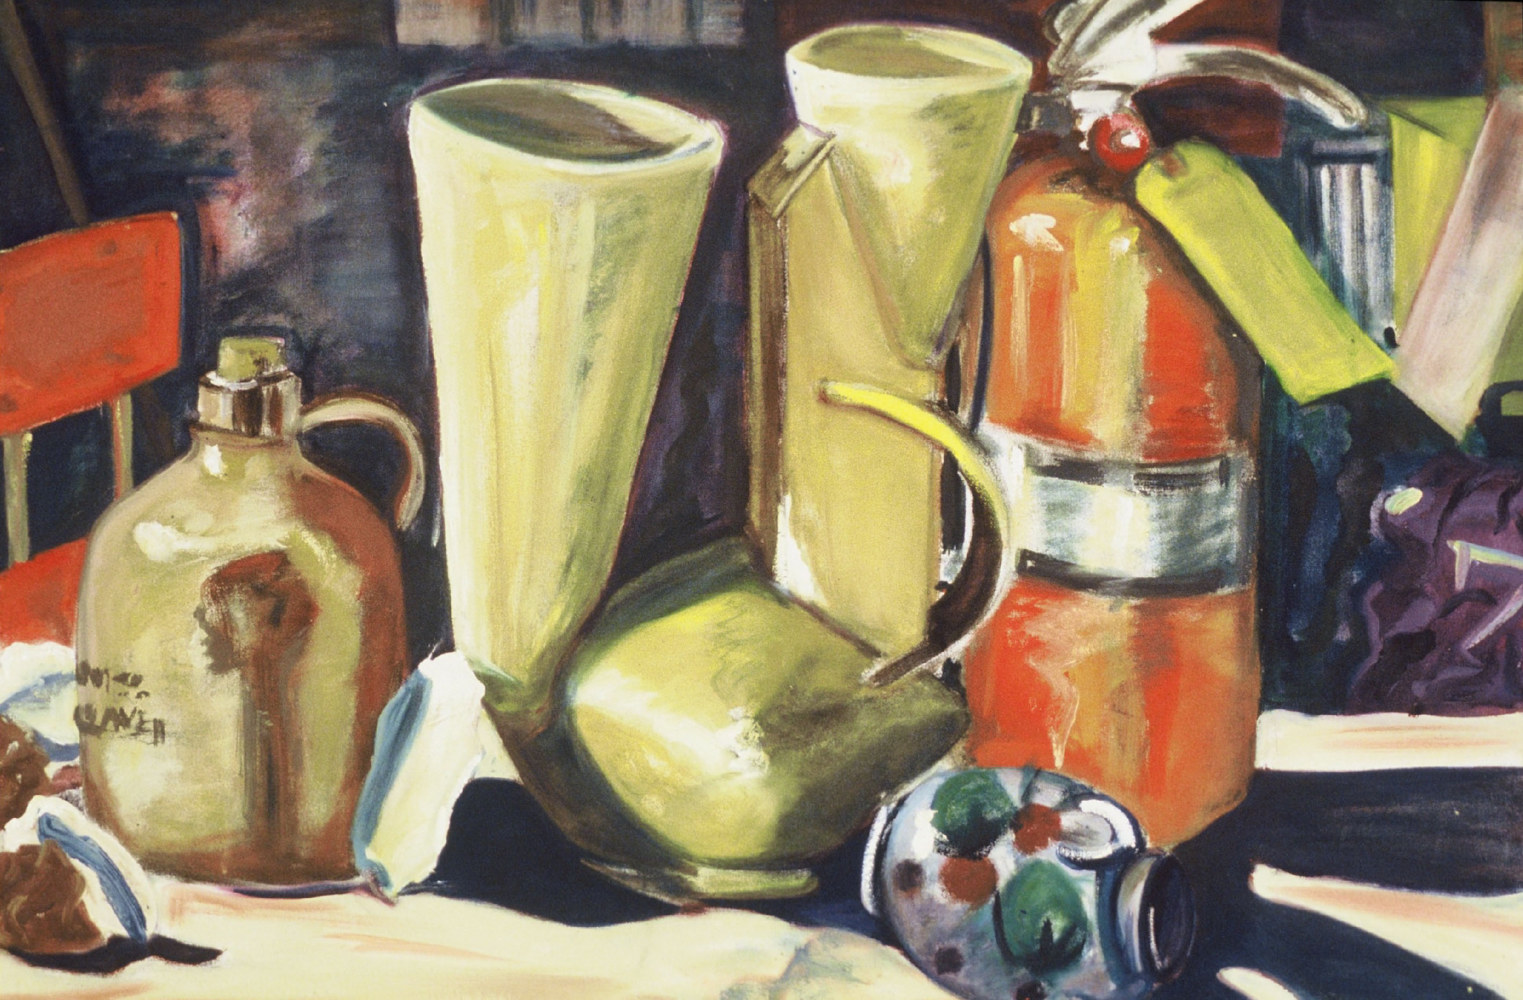 studio still life by Angela Dale